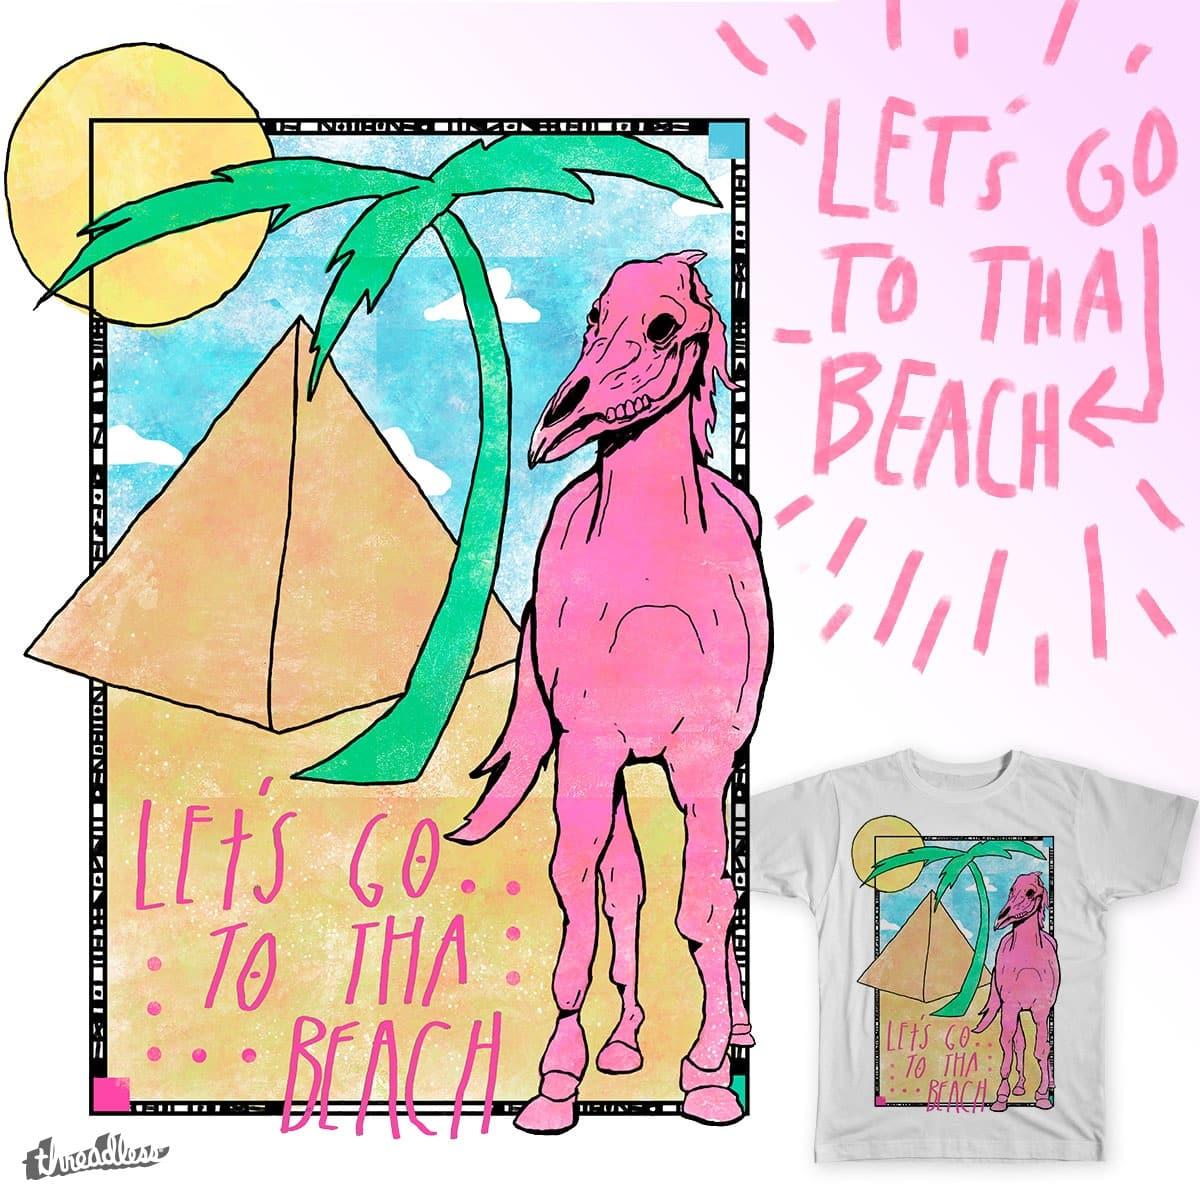 Let's Go To Tha Beach by Righty Pinkbunny on Threadless